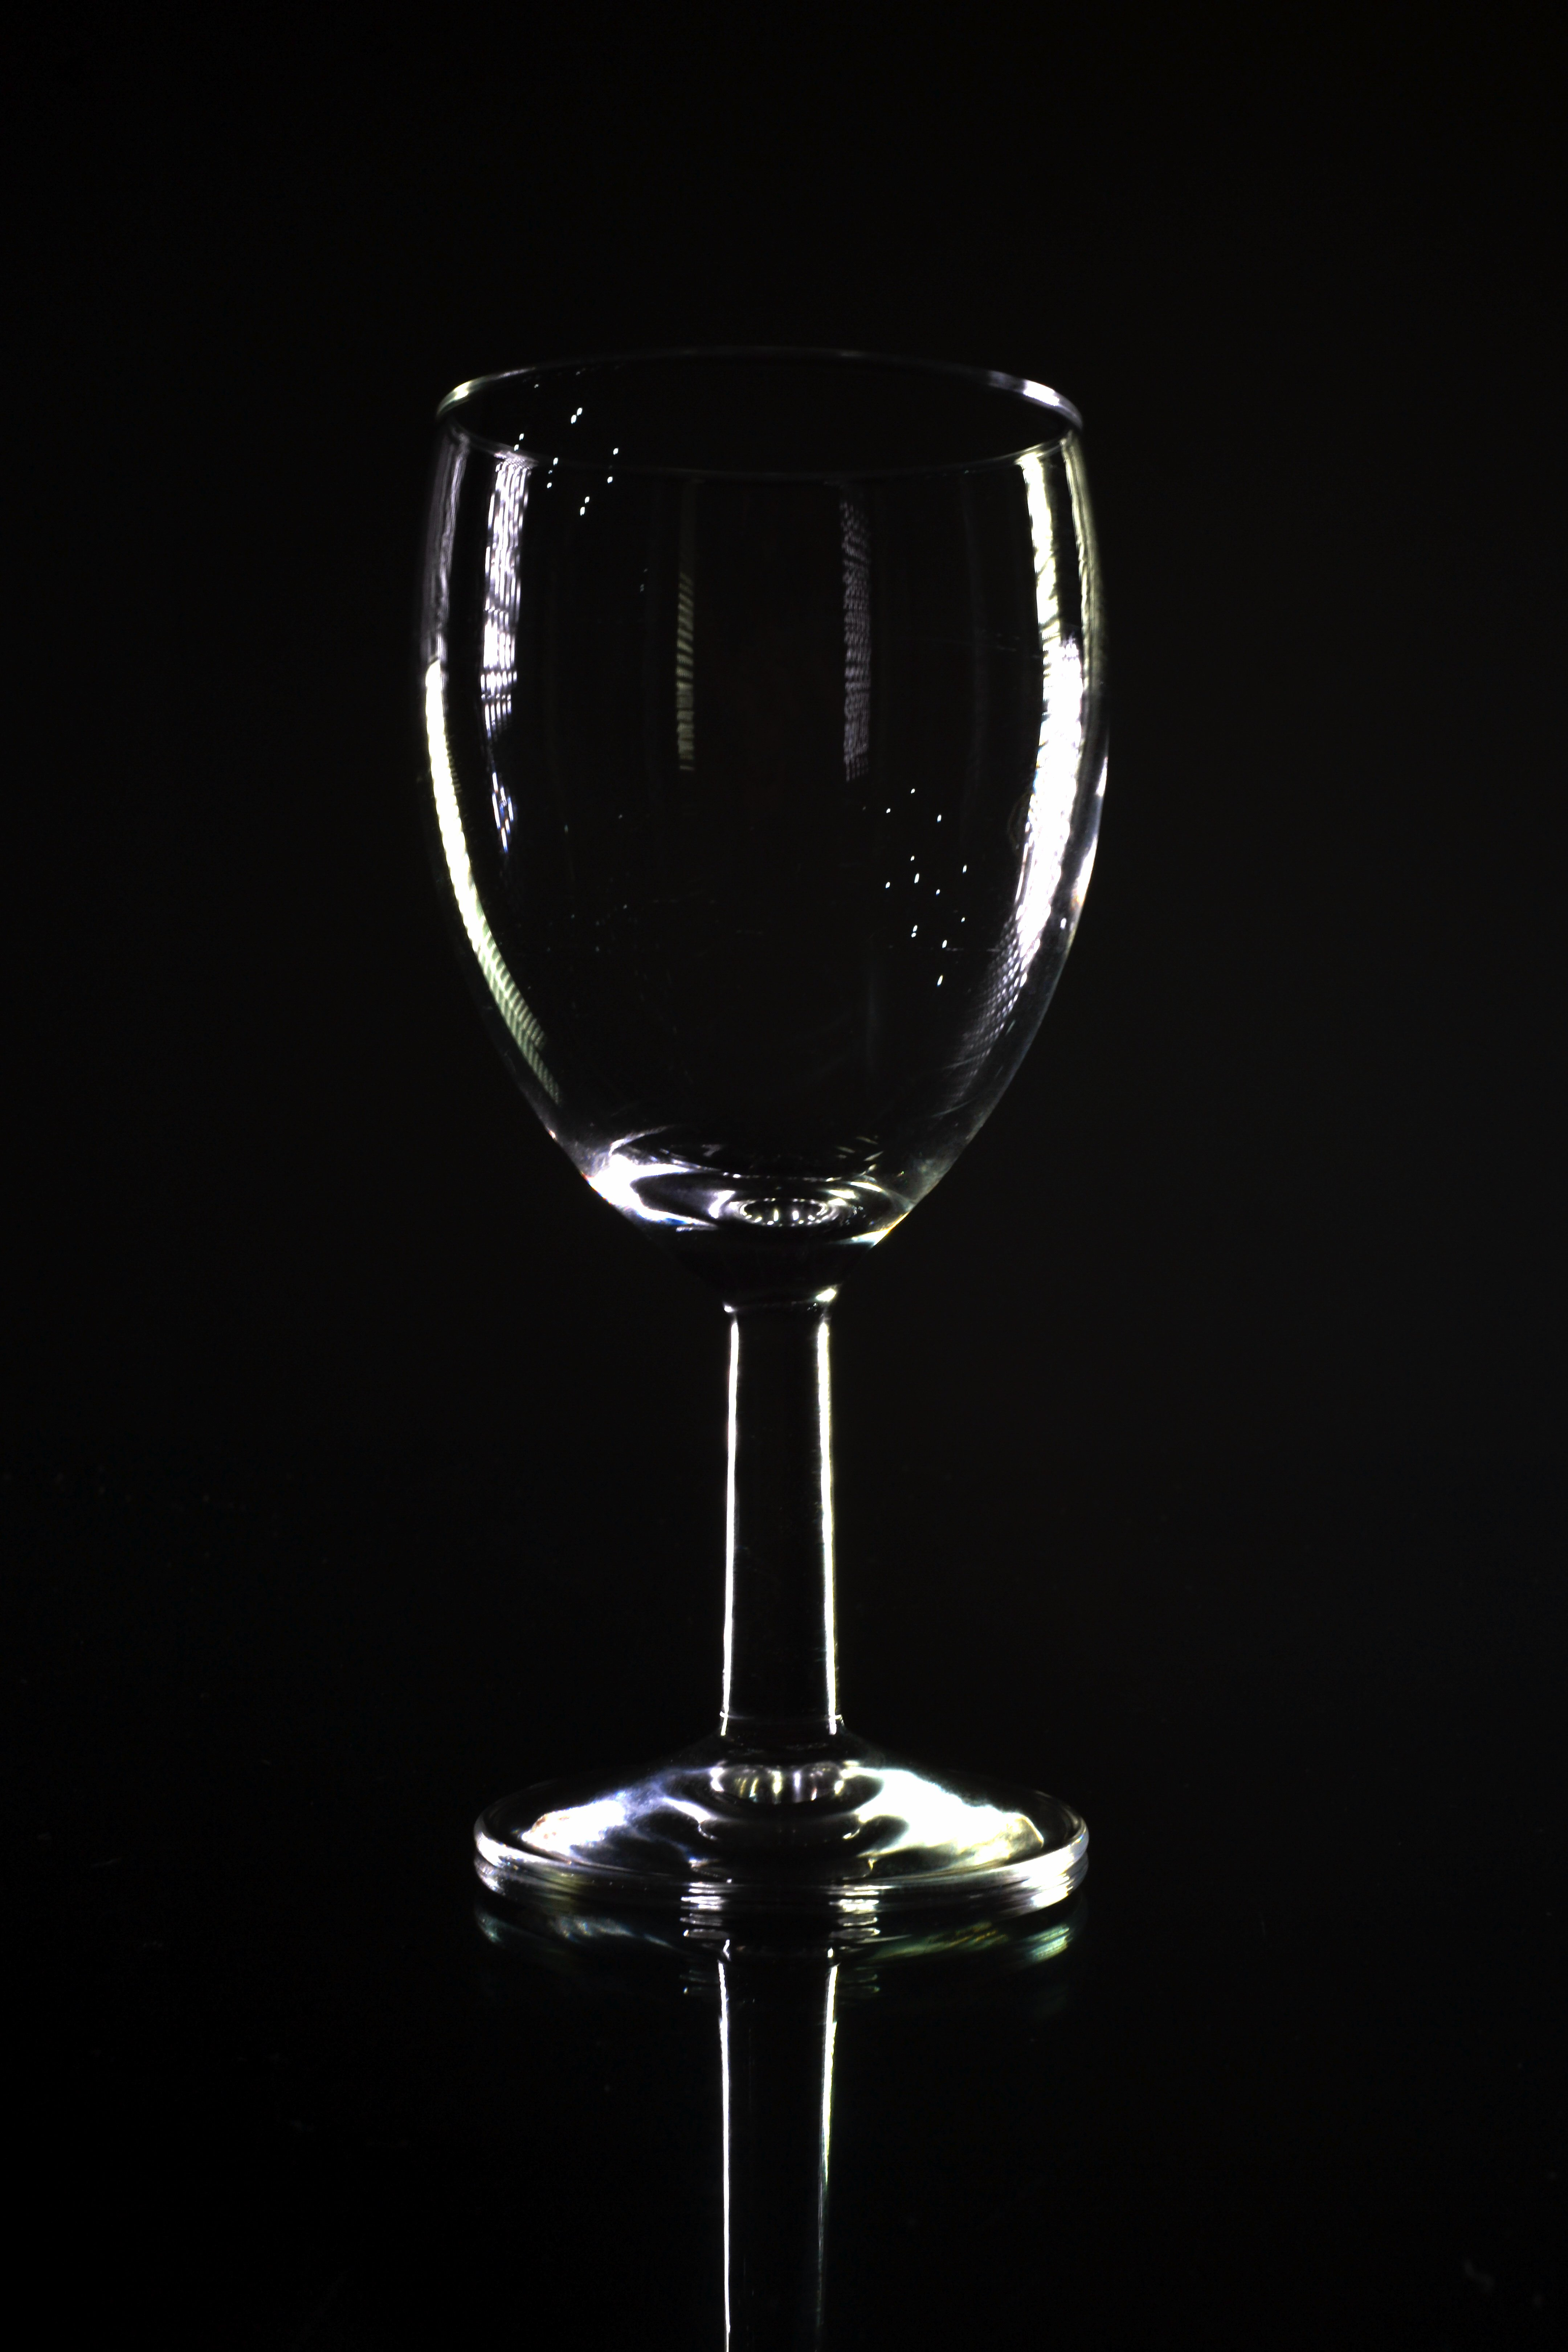 Stock Photo of Empty Wine Glass Shape Outlined with Black Background